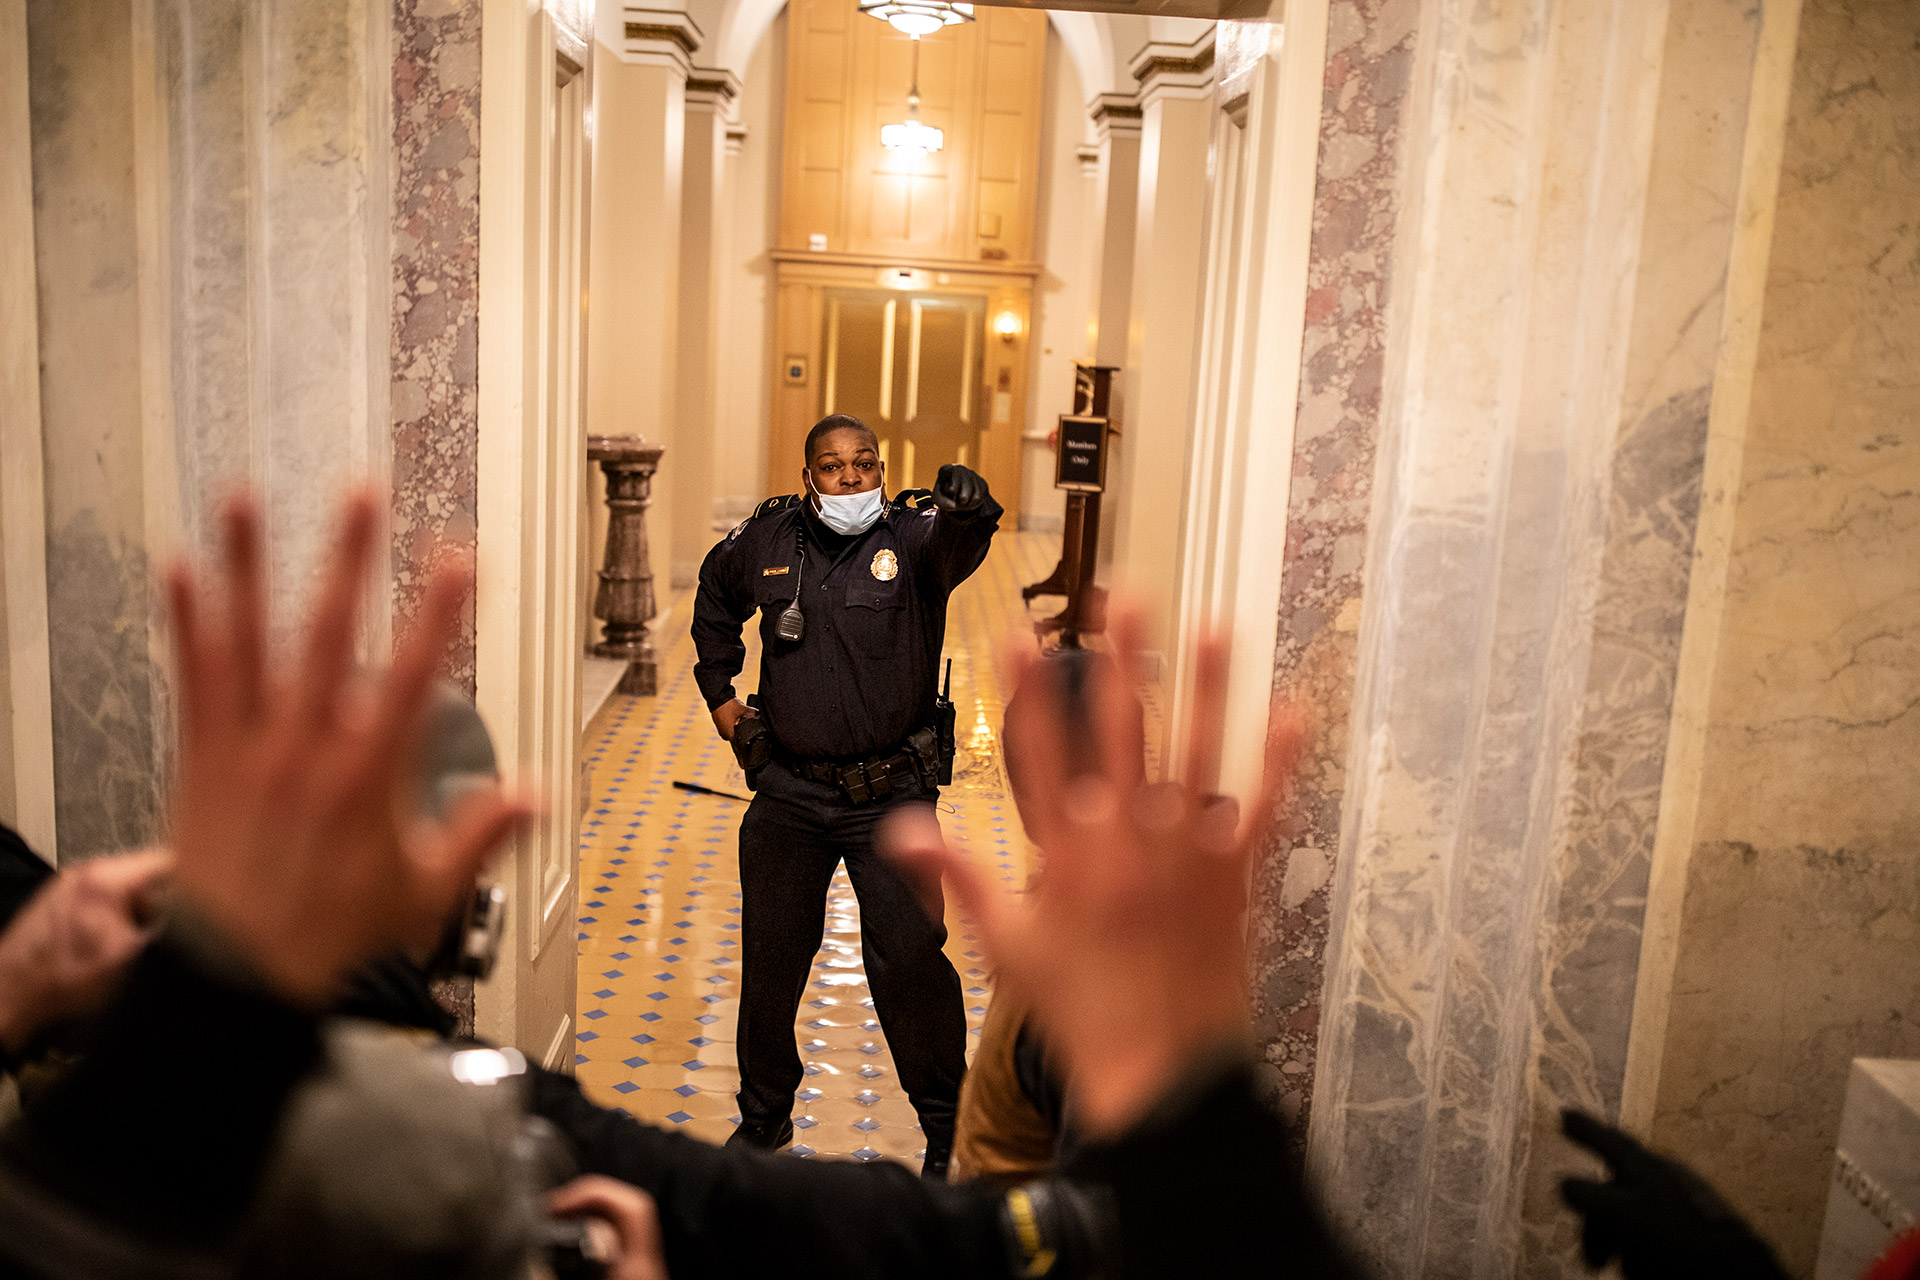 © Ashley Gilbertson / VII for The New York Times Magazine. US Capitol Police (USCP) Officer Eugene Goodman confronts protesters as they storm the Capitol in Washington, D.C. after listening to a speech by President Trump on January 6, 2021